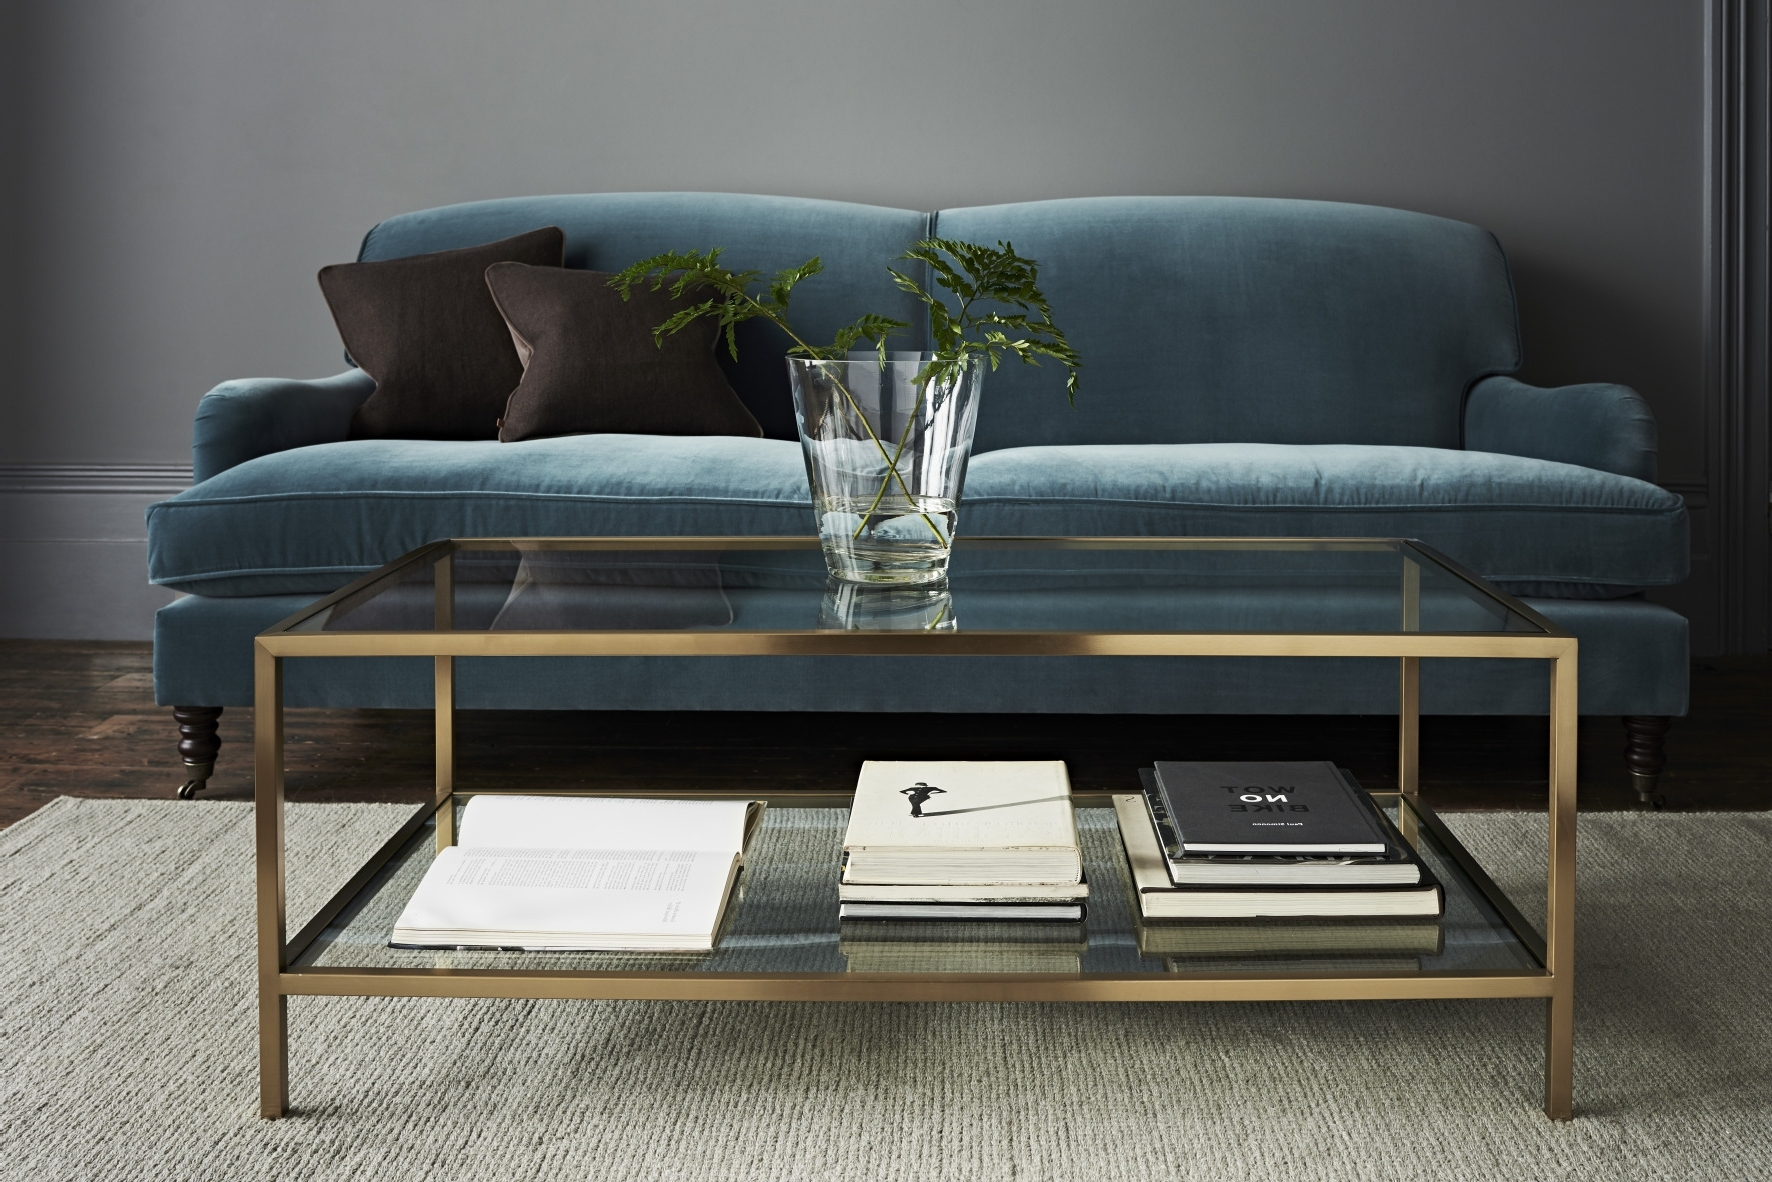 Velvet Sofas: 7 Of The Latest Looks – The English Home Pertaining To 2019 Velvet Sofas (View 18 of 20)